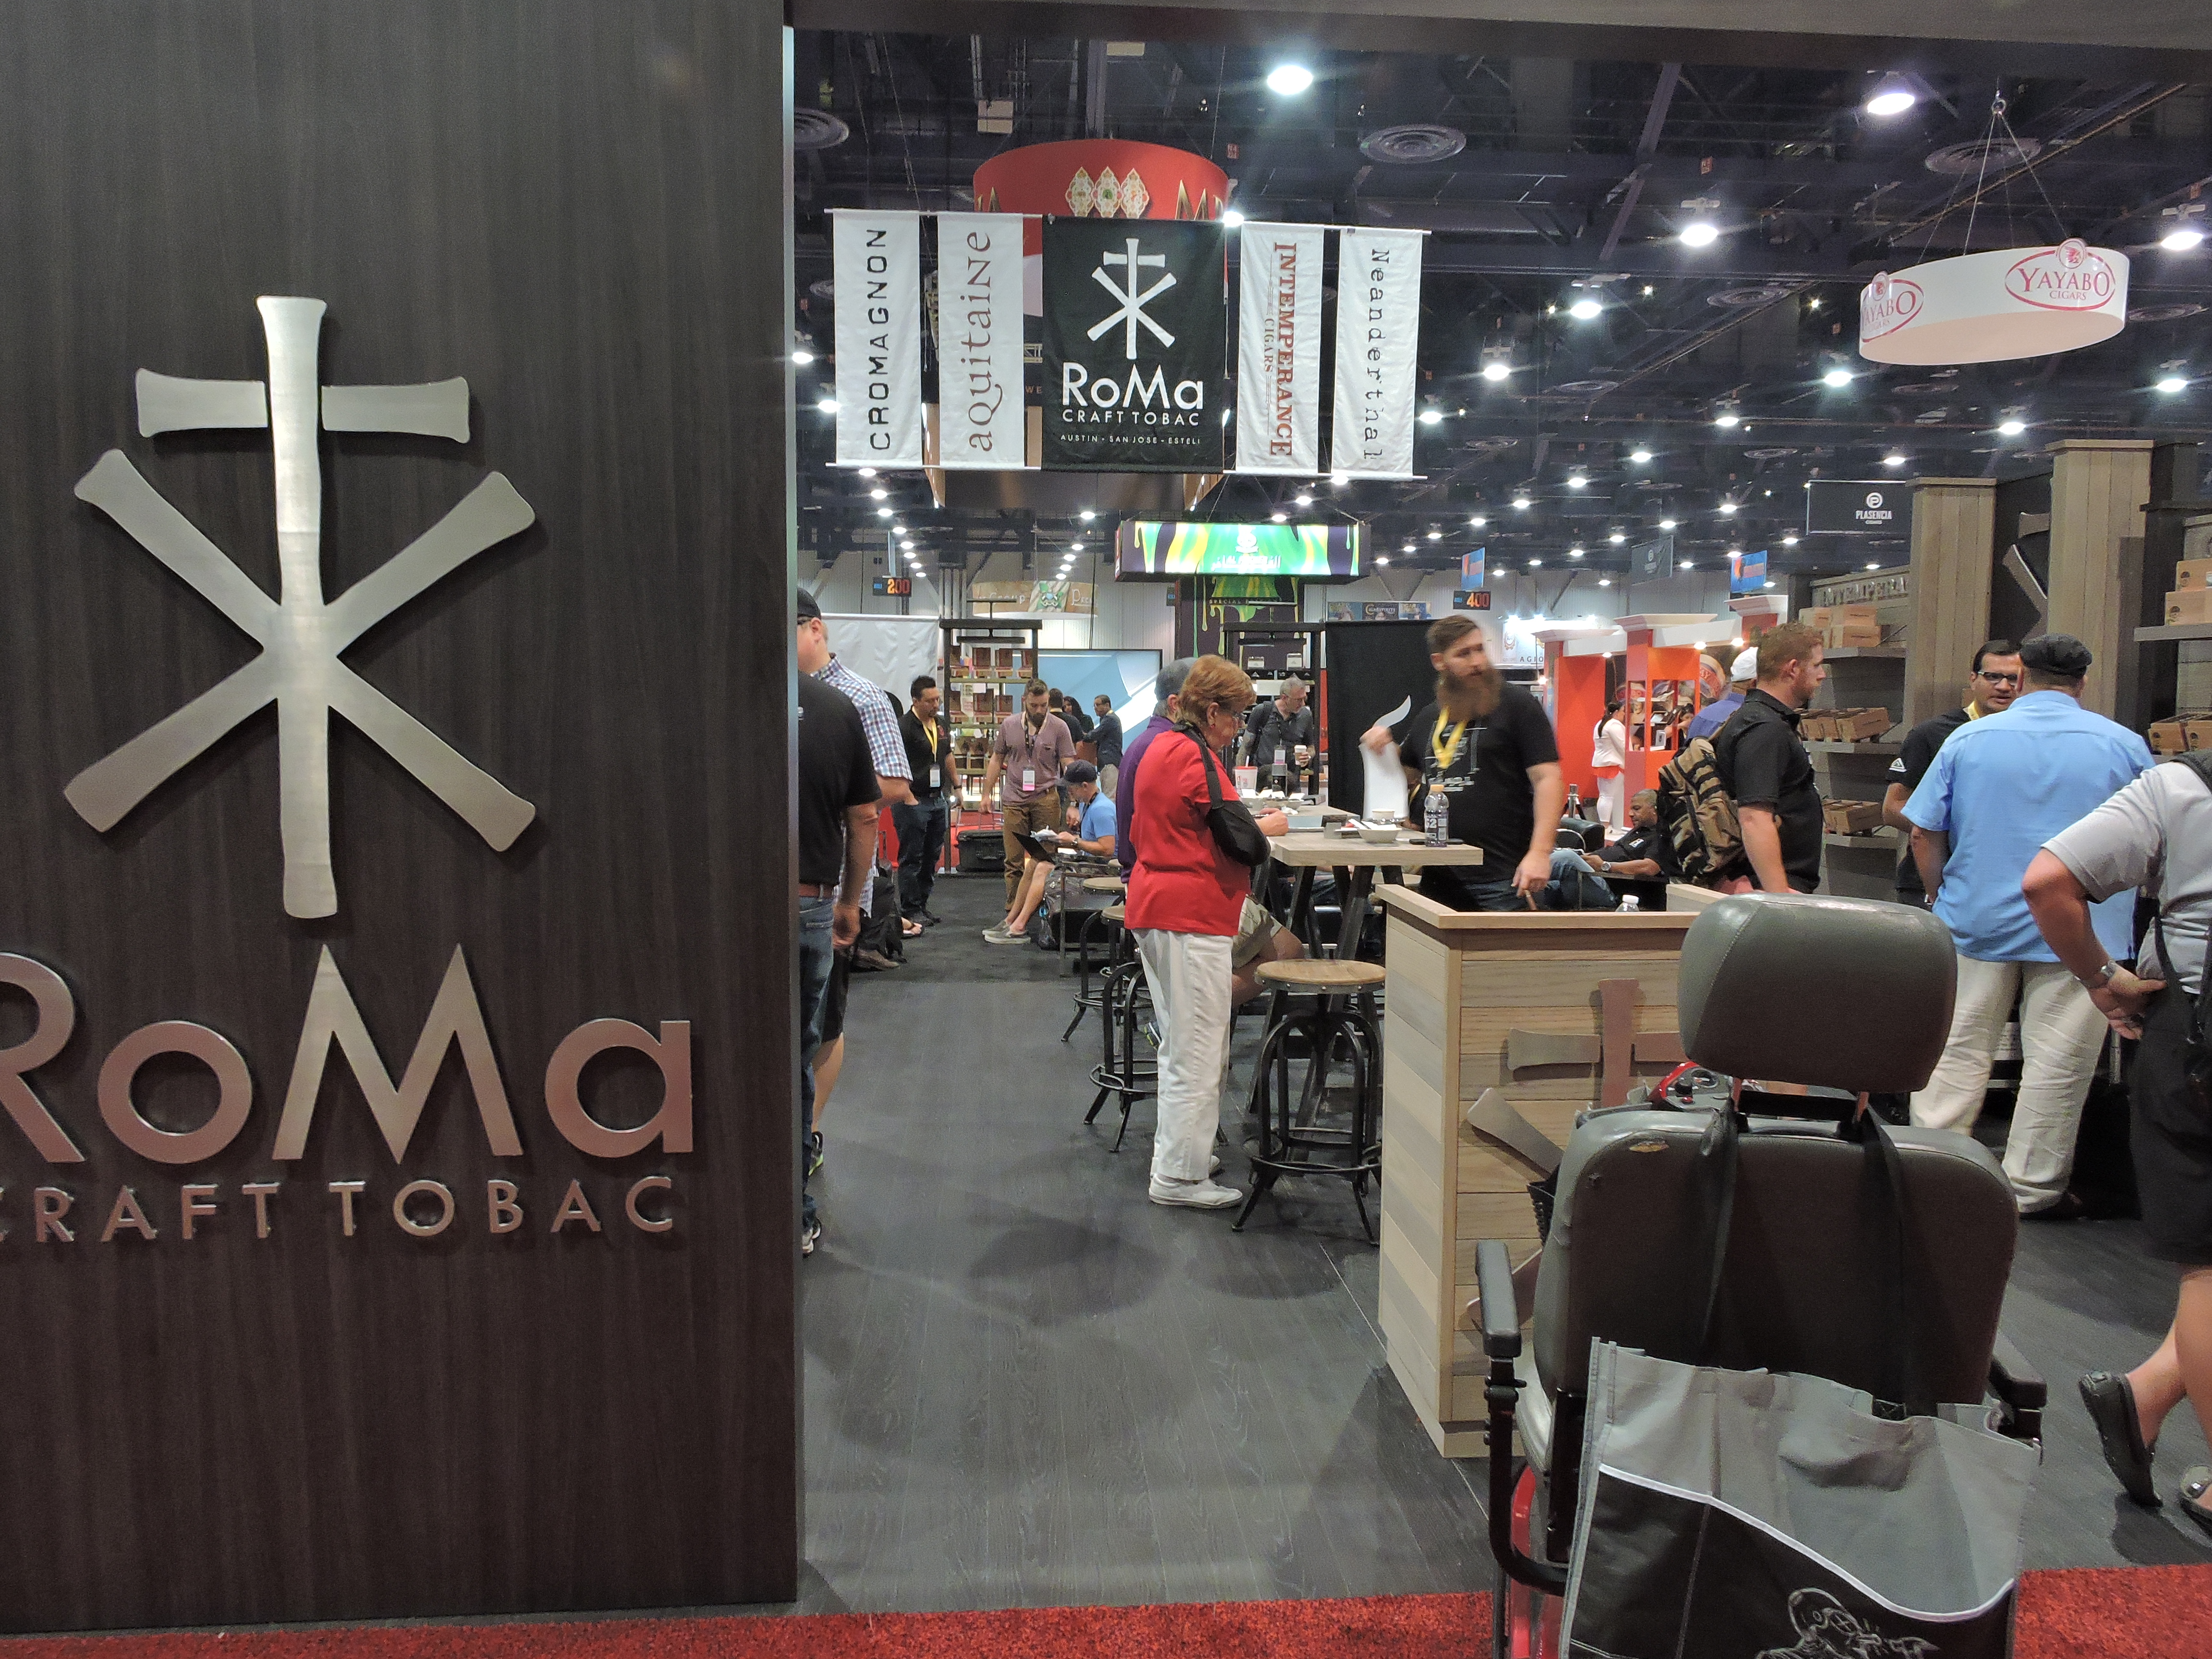 RoMa Craft Tobac IPCPR Booth